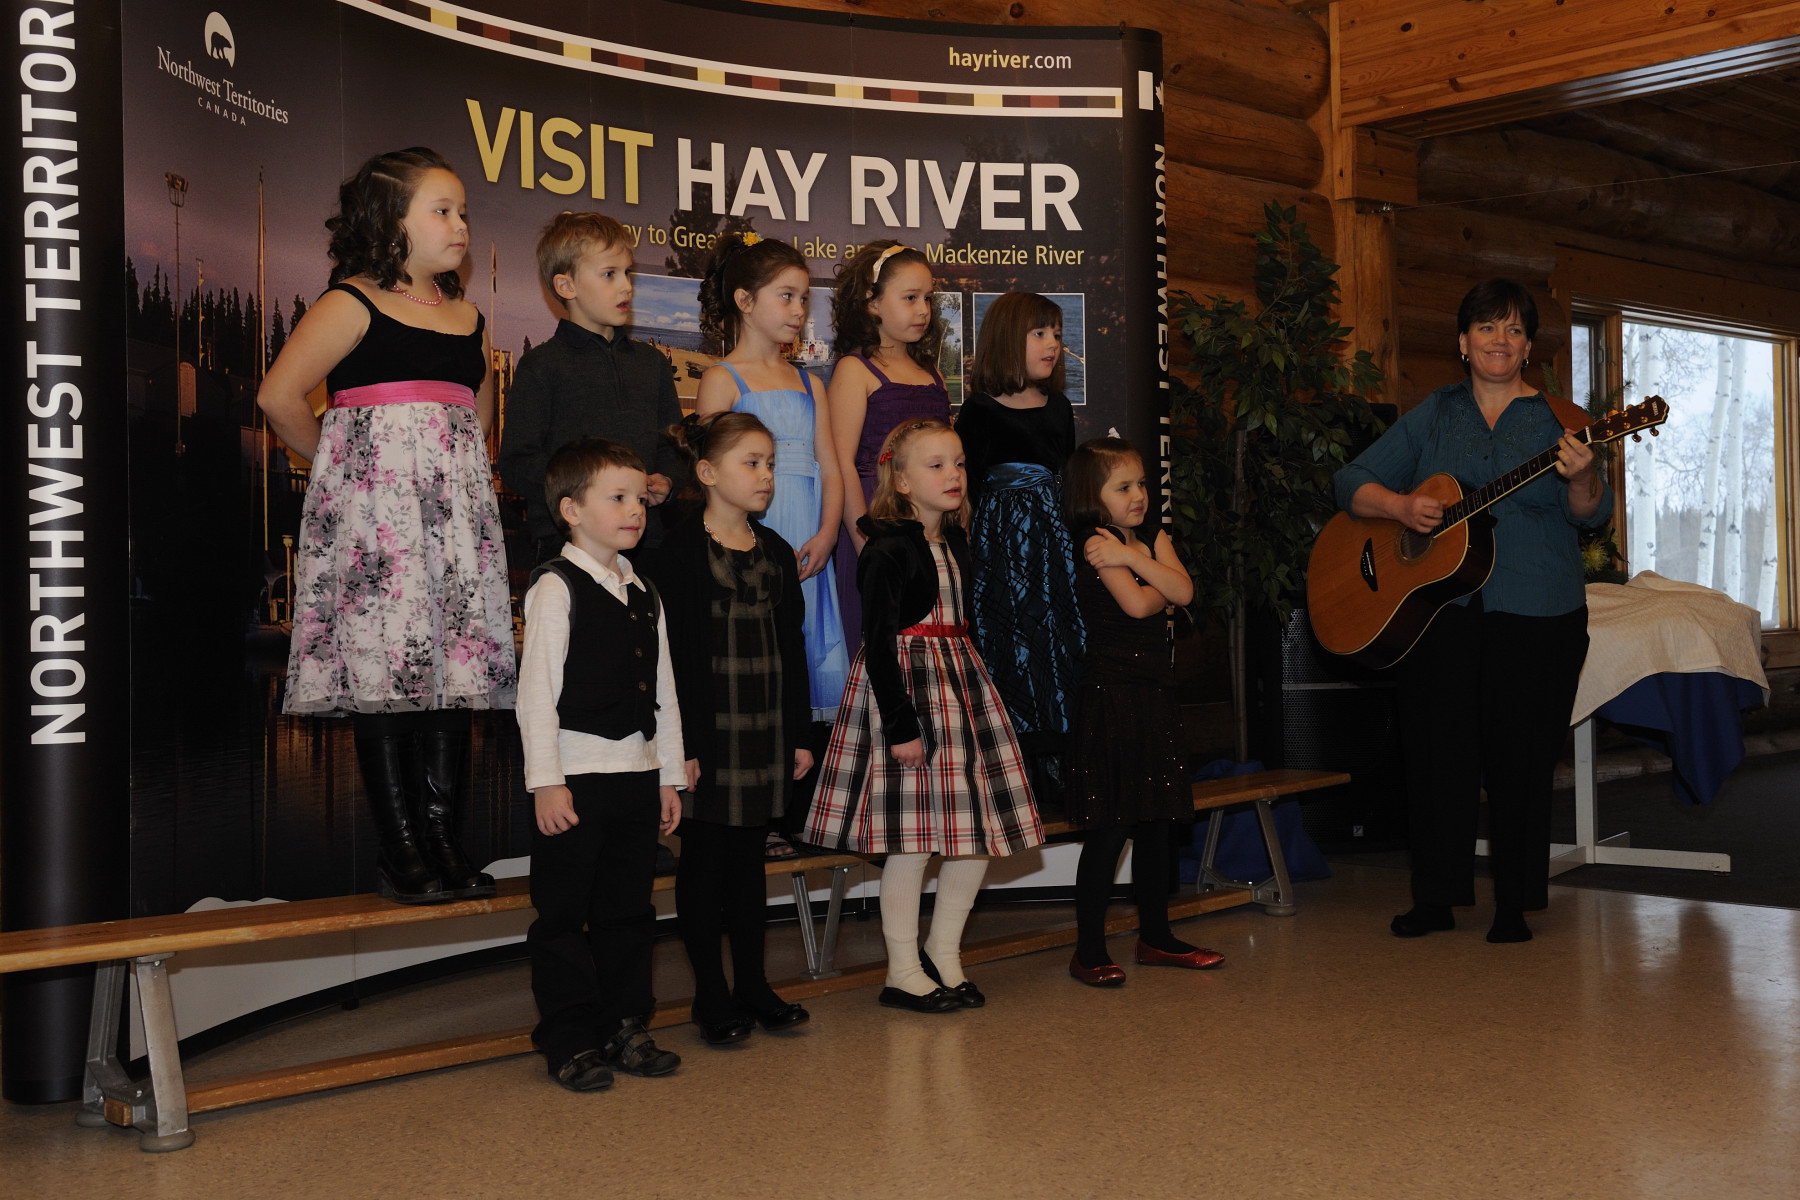 Their Excellencies were treated to a performance by young francophone students in the community of Hay River.